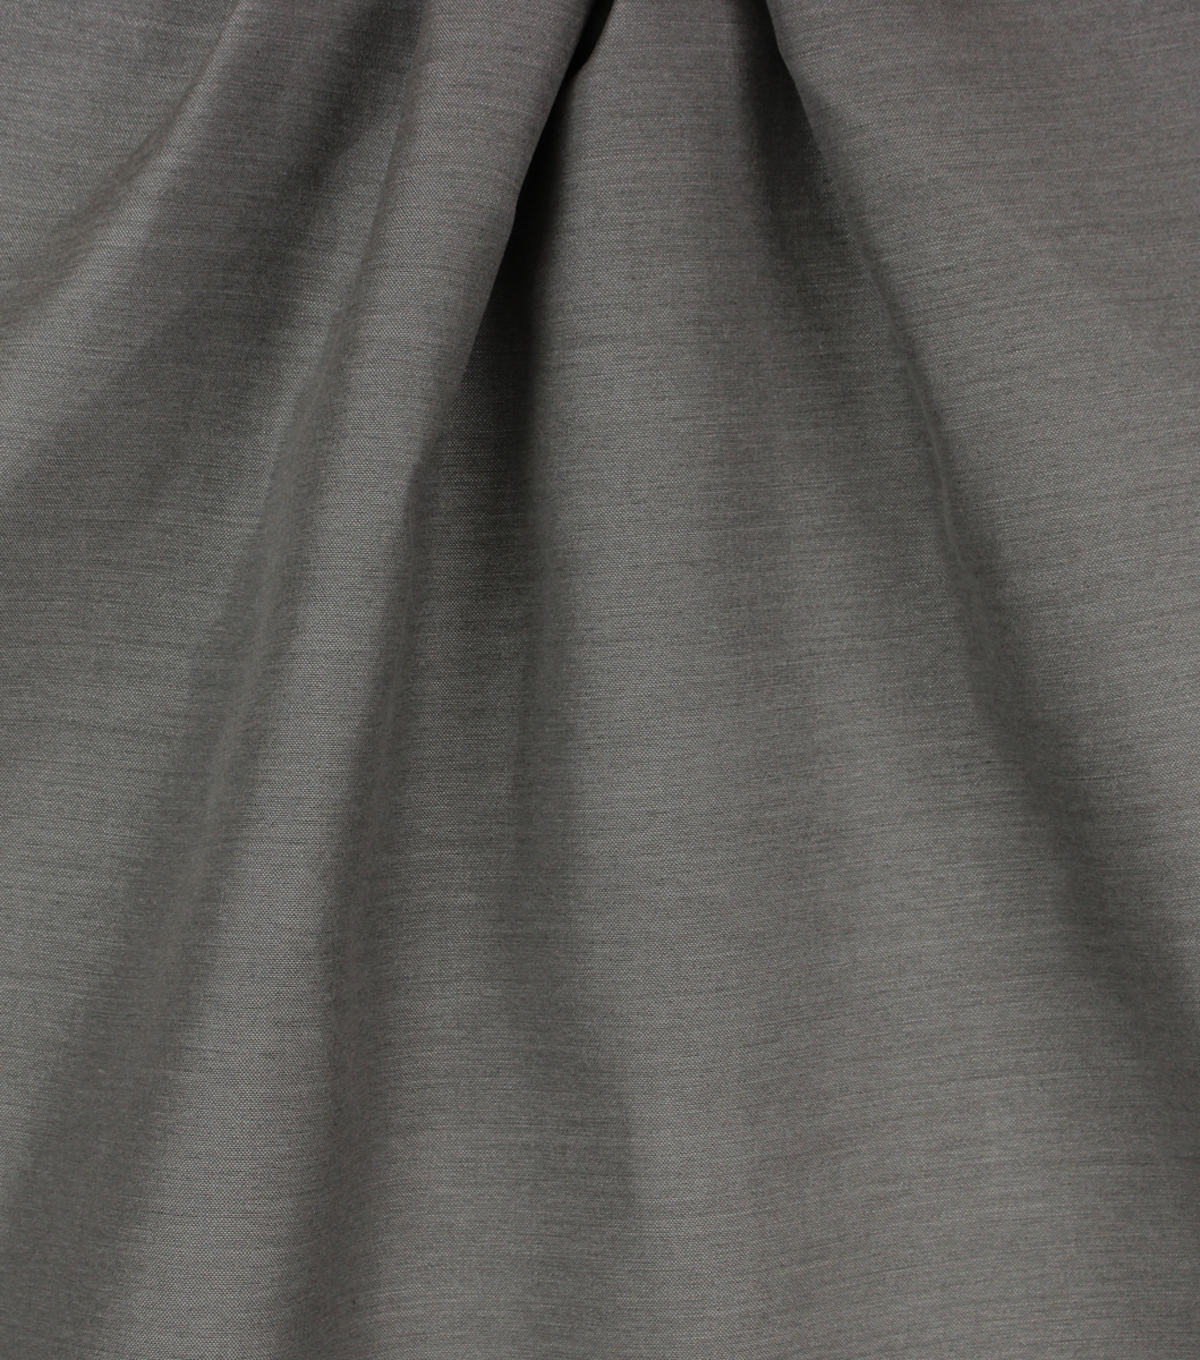 Optimum Performance Multi-Purpose Decor Fabric 54\u0027\u0027-Zinc